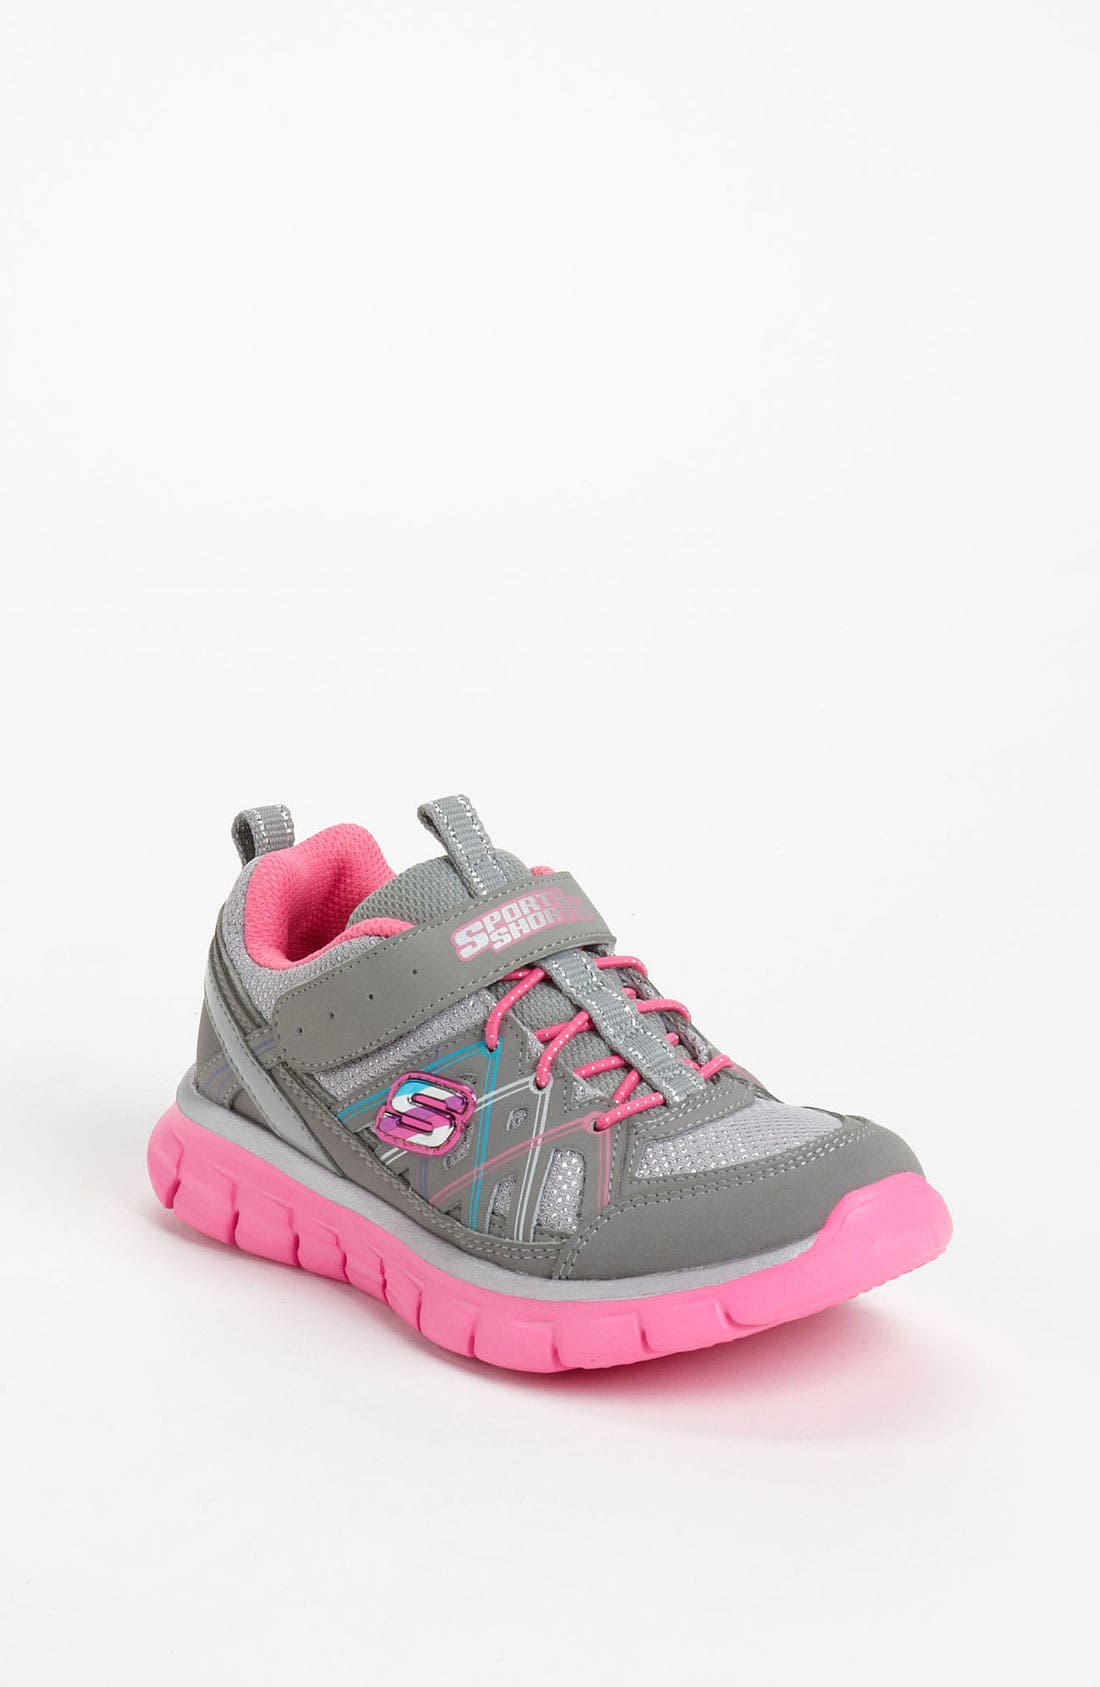 Main Image - SKECHERS 'Synergy Aerials' Sneaker (Toddler, Little Kid & Big Kid)